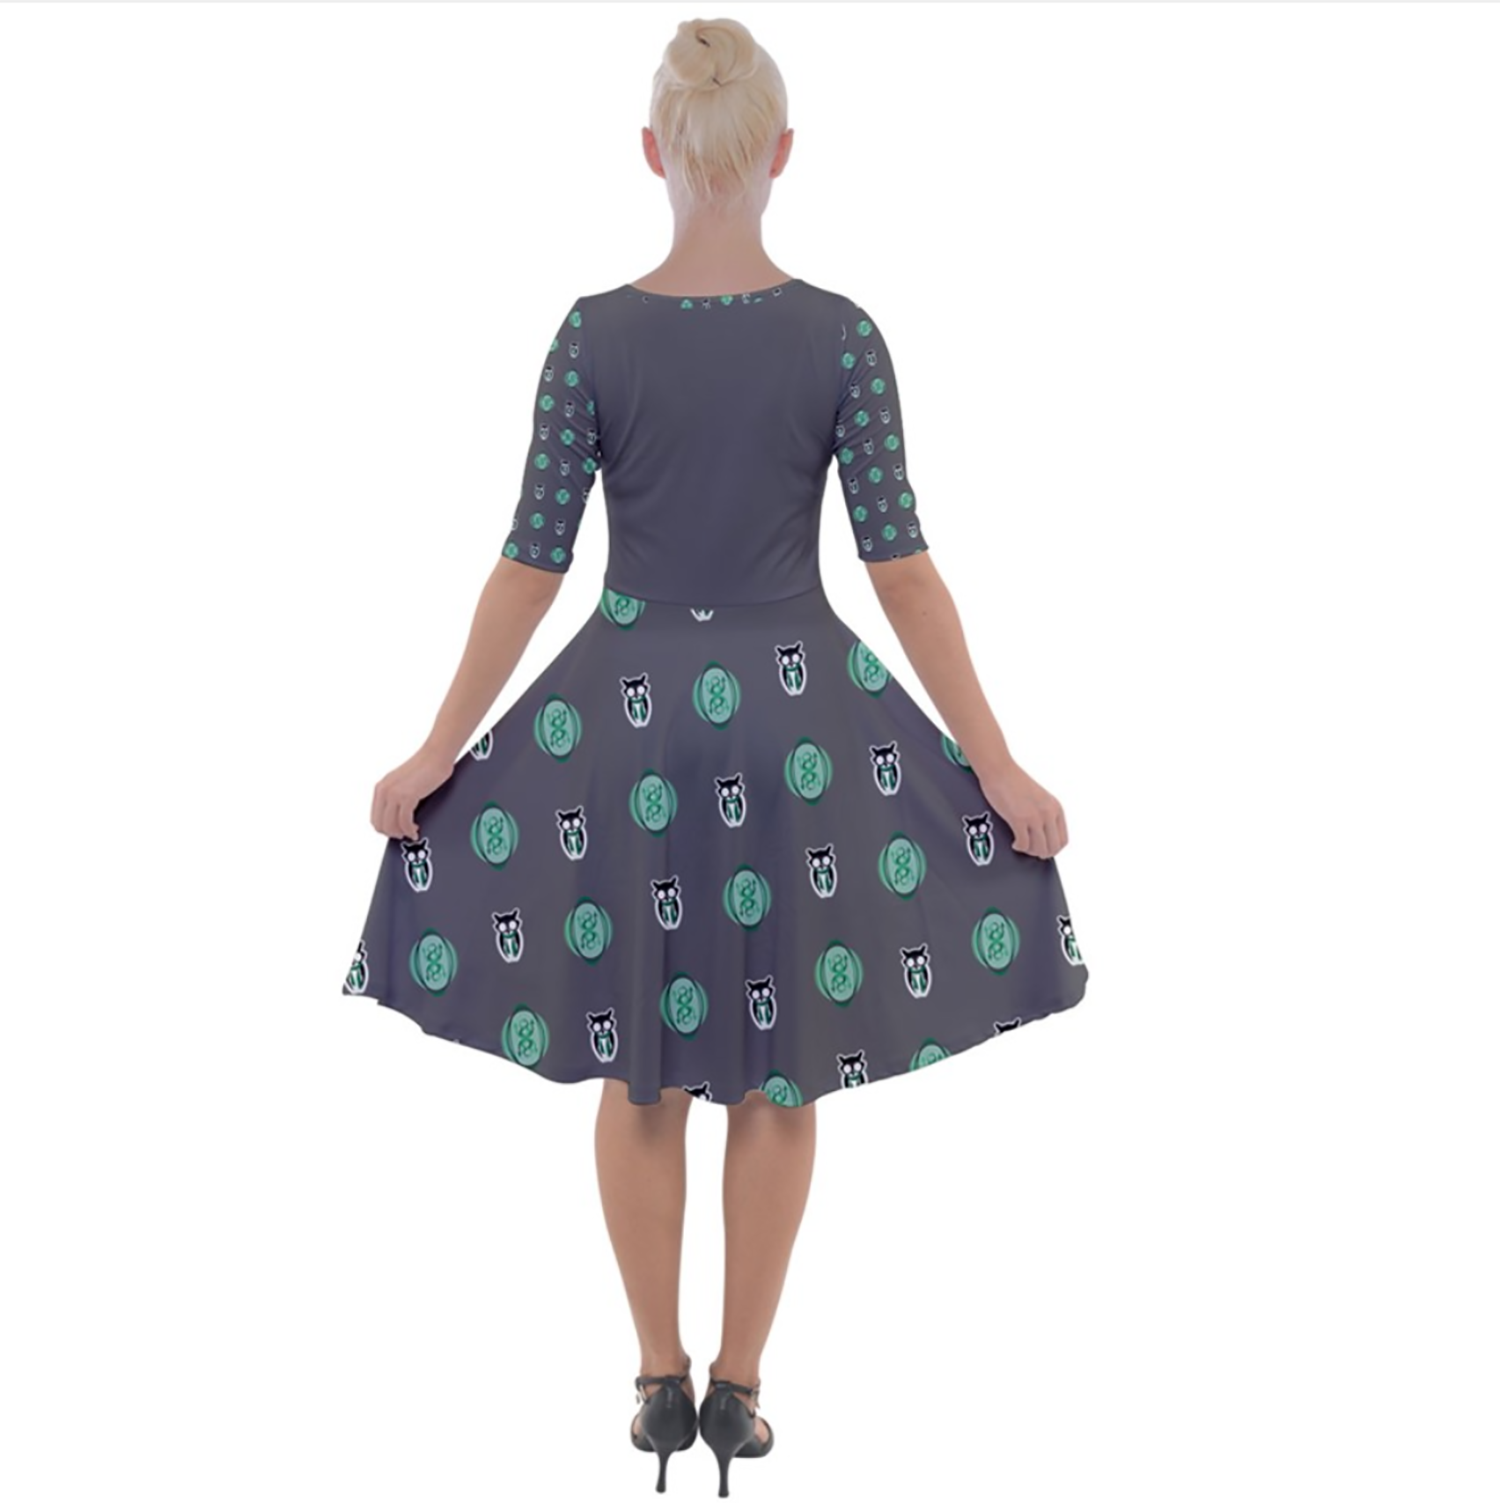 Owl (Green) Patterned Dress - Quarter Sleeve A-Line Dress - Inspired by Slytherin